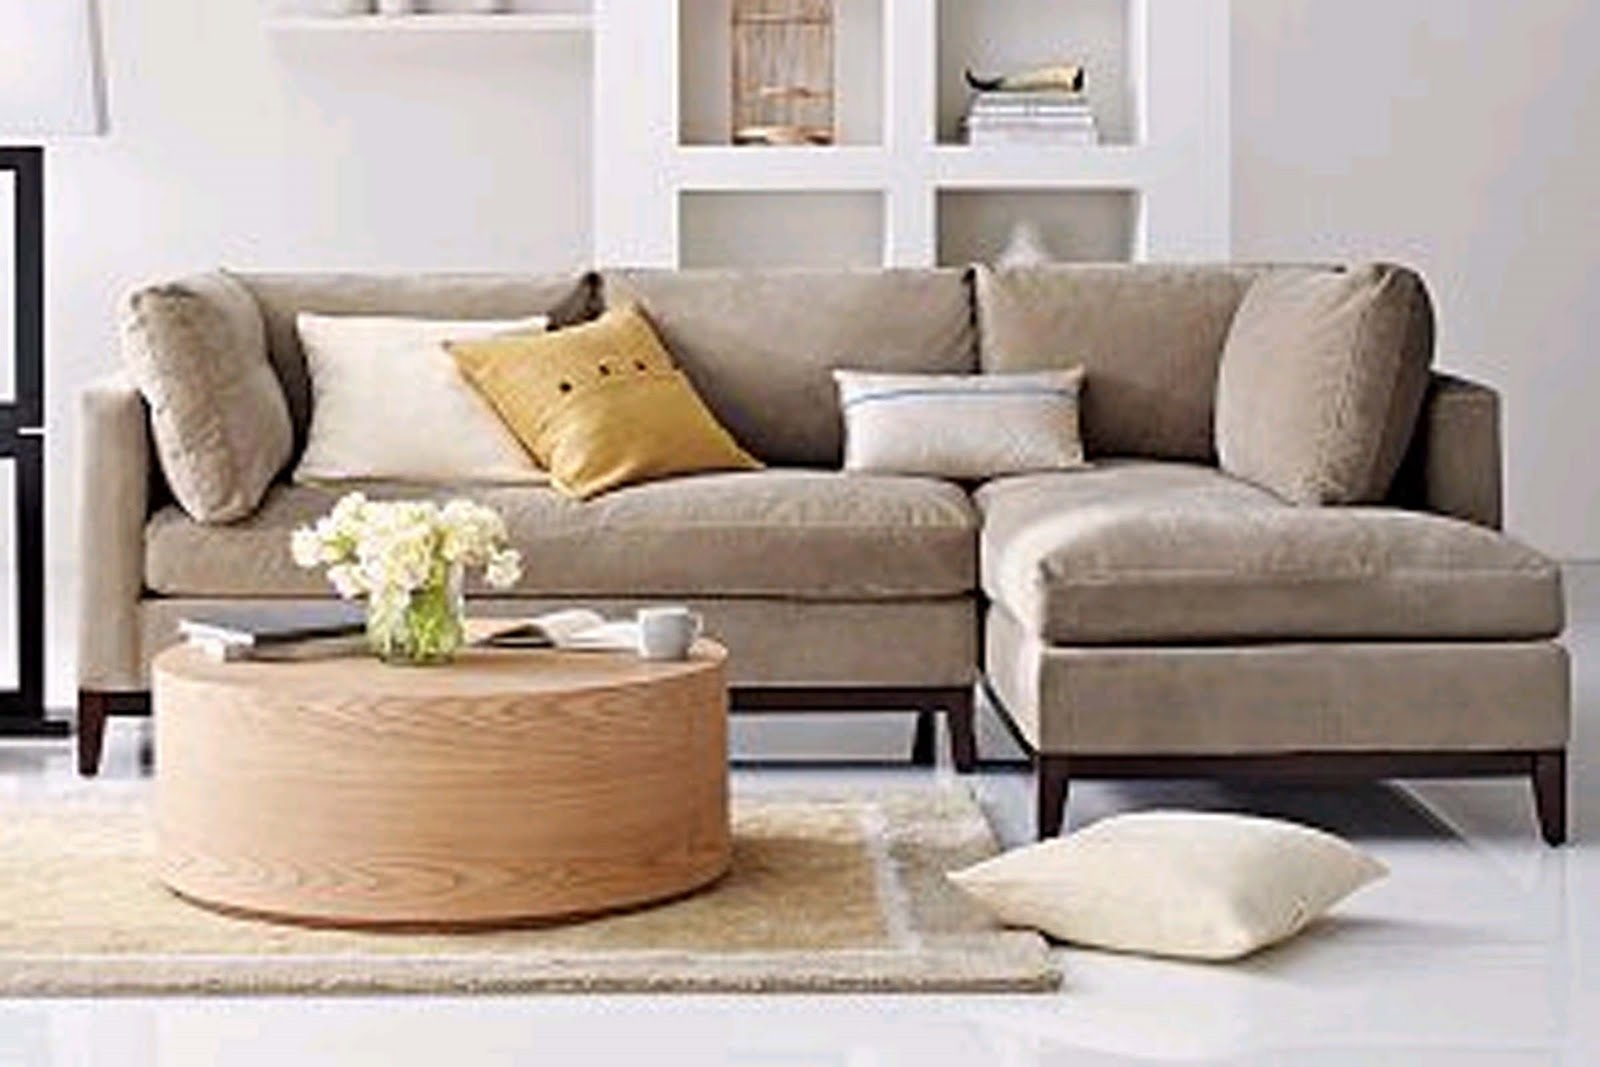 Featured Image of Crate And Barrel Sectional Sofas